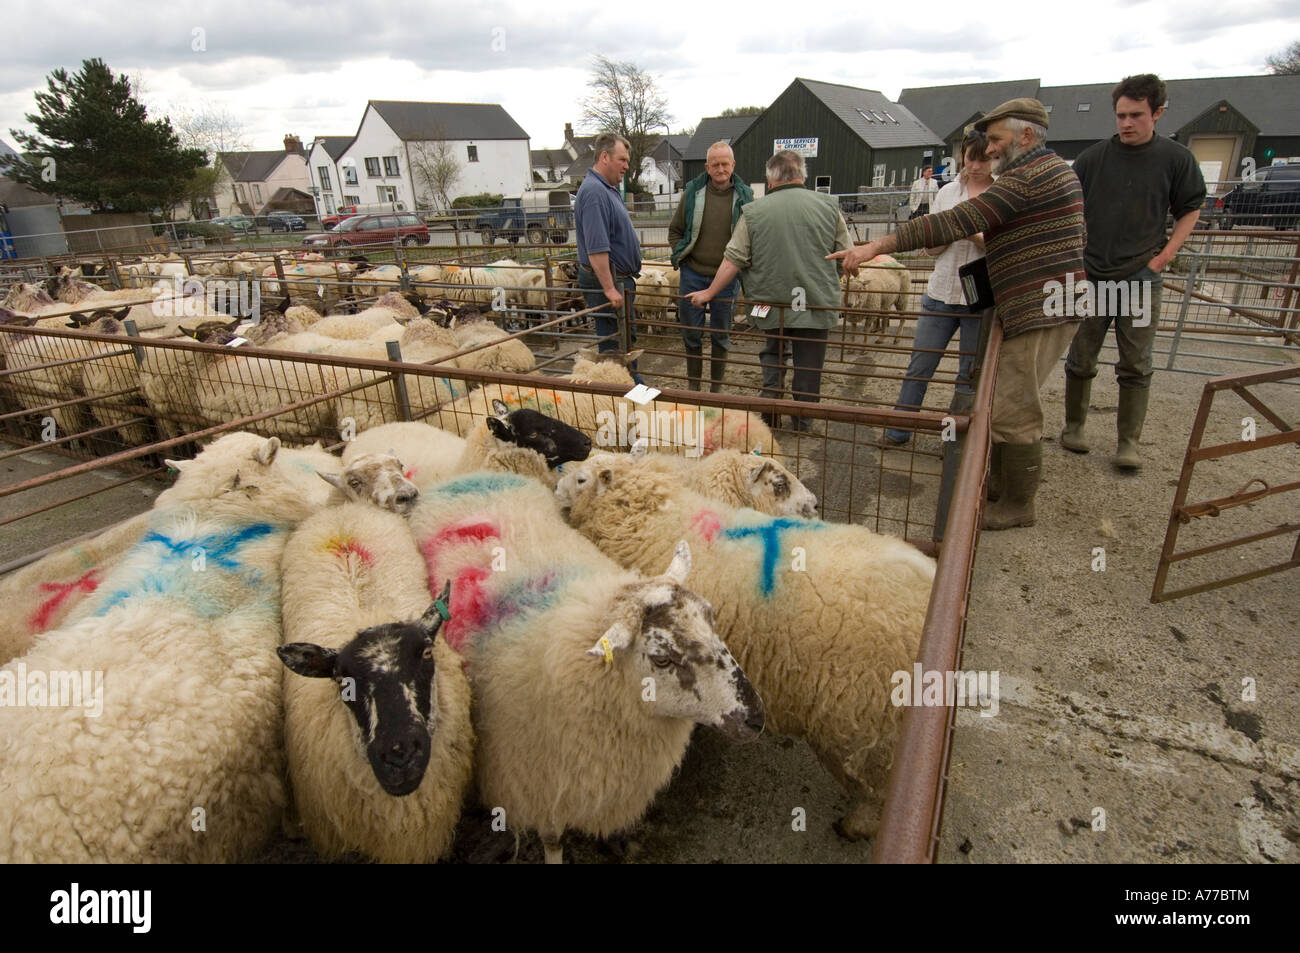 Farmers looking at livestock at Crymych sheep market Pembrokeshire wales  cymru - Stock Image 28b235cfc559